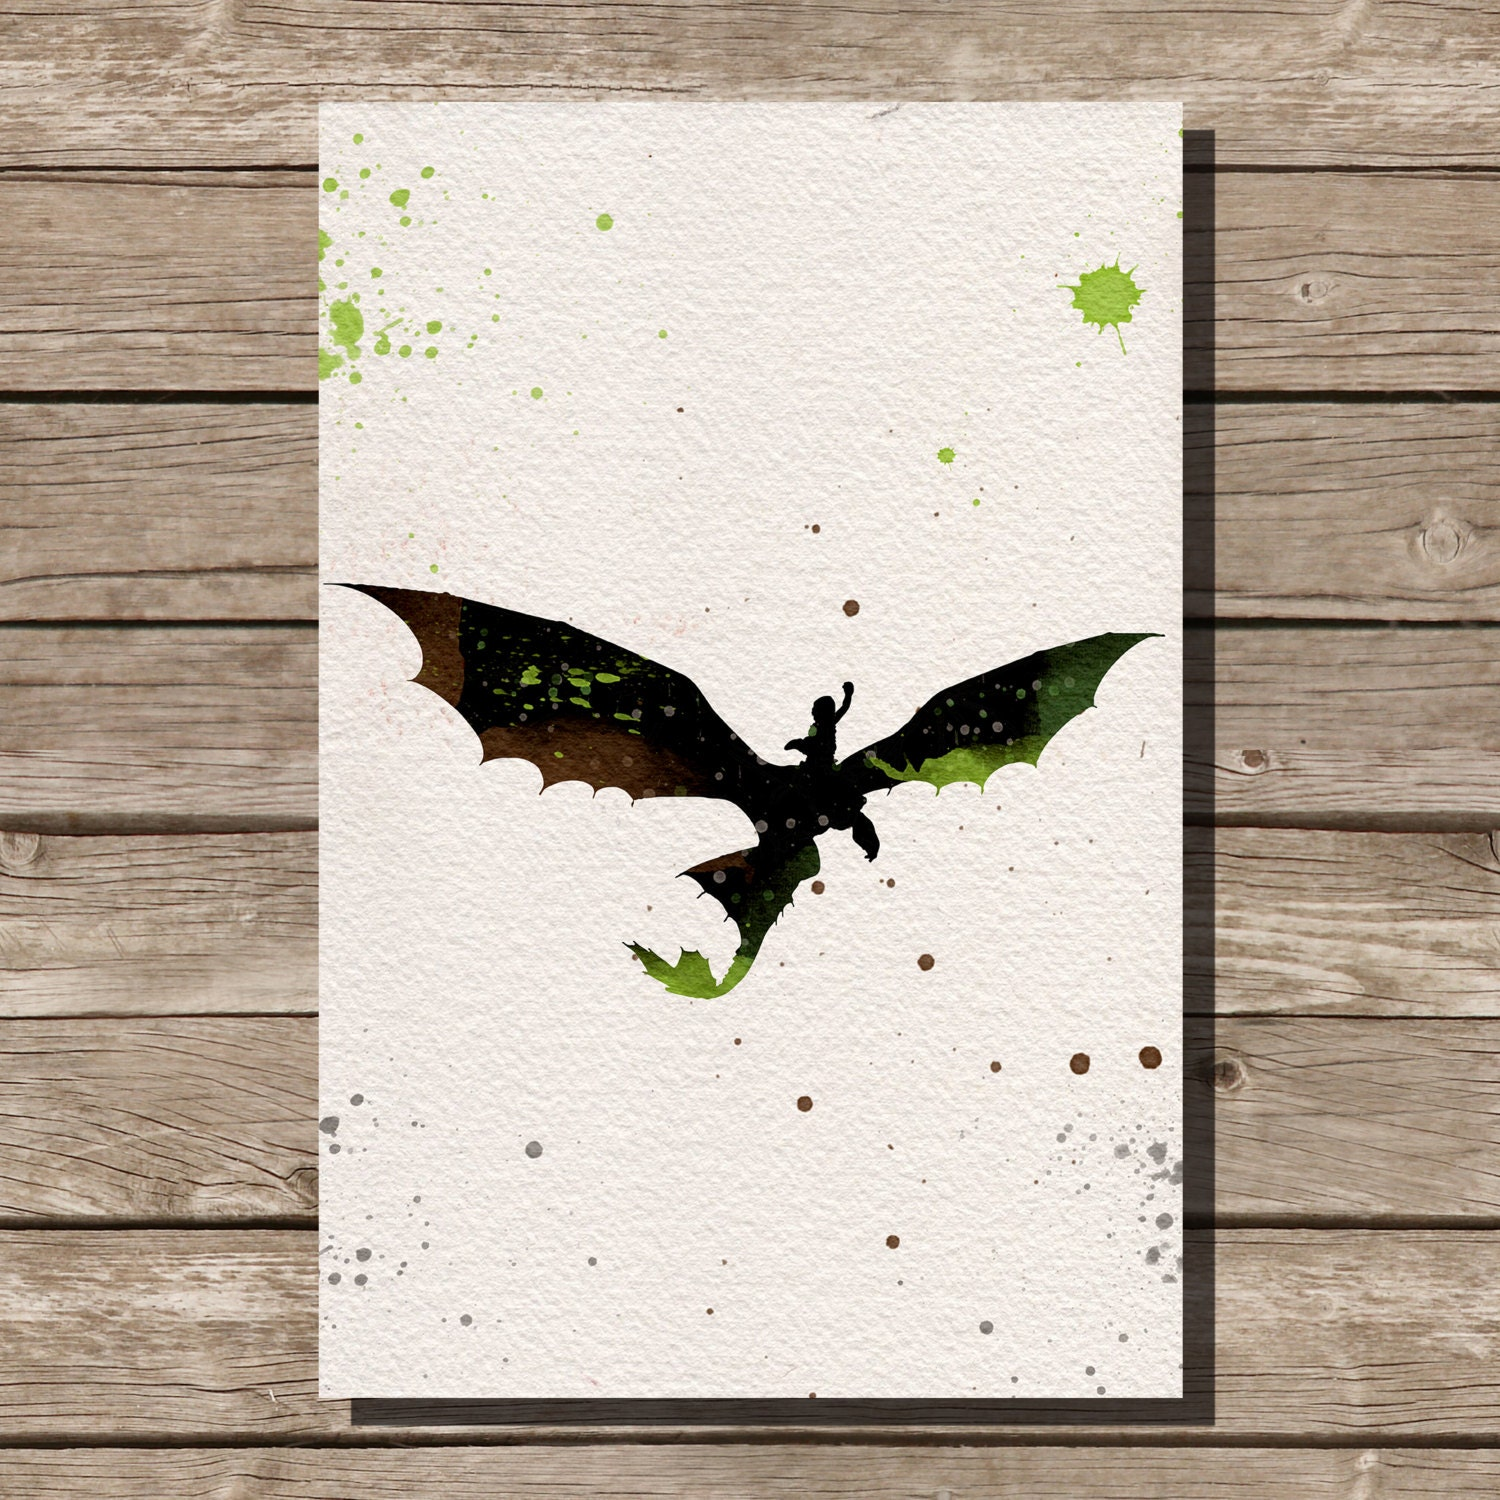 How to train your dragon hiccup and toothless watercolor zoom ccuart Image collections